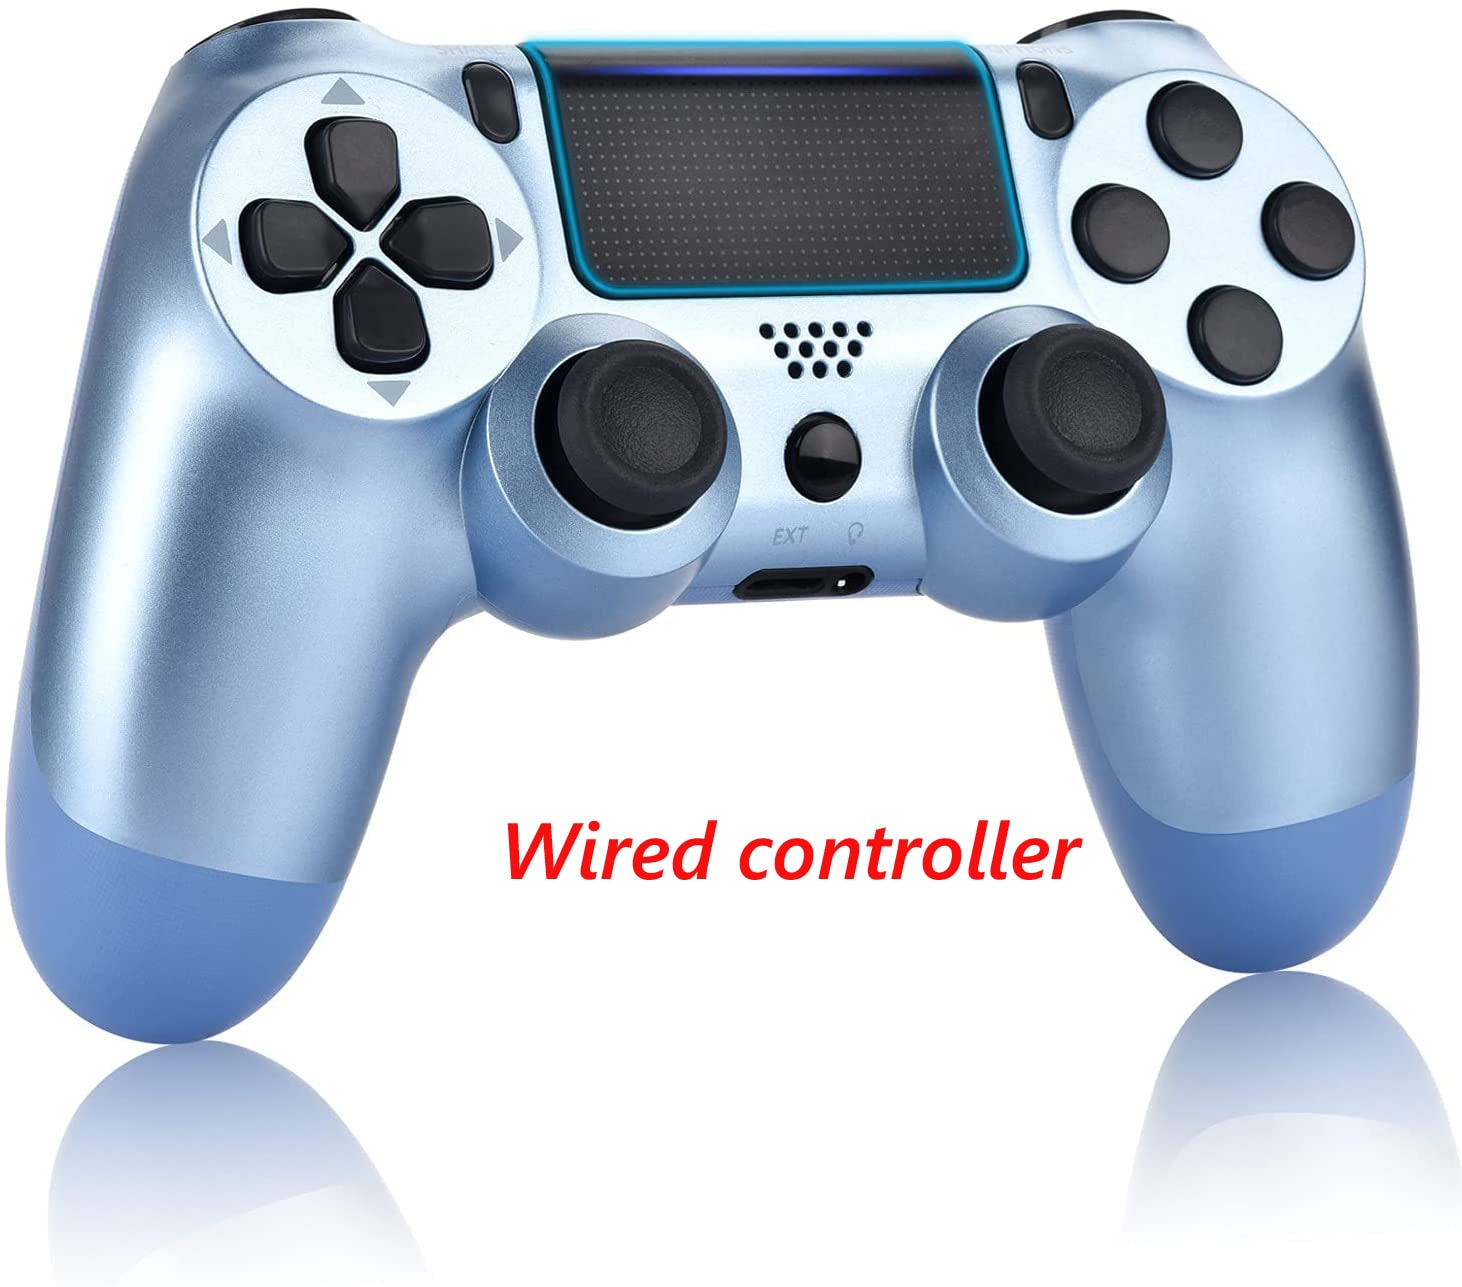 PS4 Wired Controller Dual Shock 4 Gamepad For Sony Playstation 4 Titanium Blue - 1